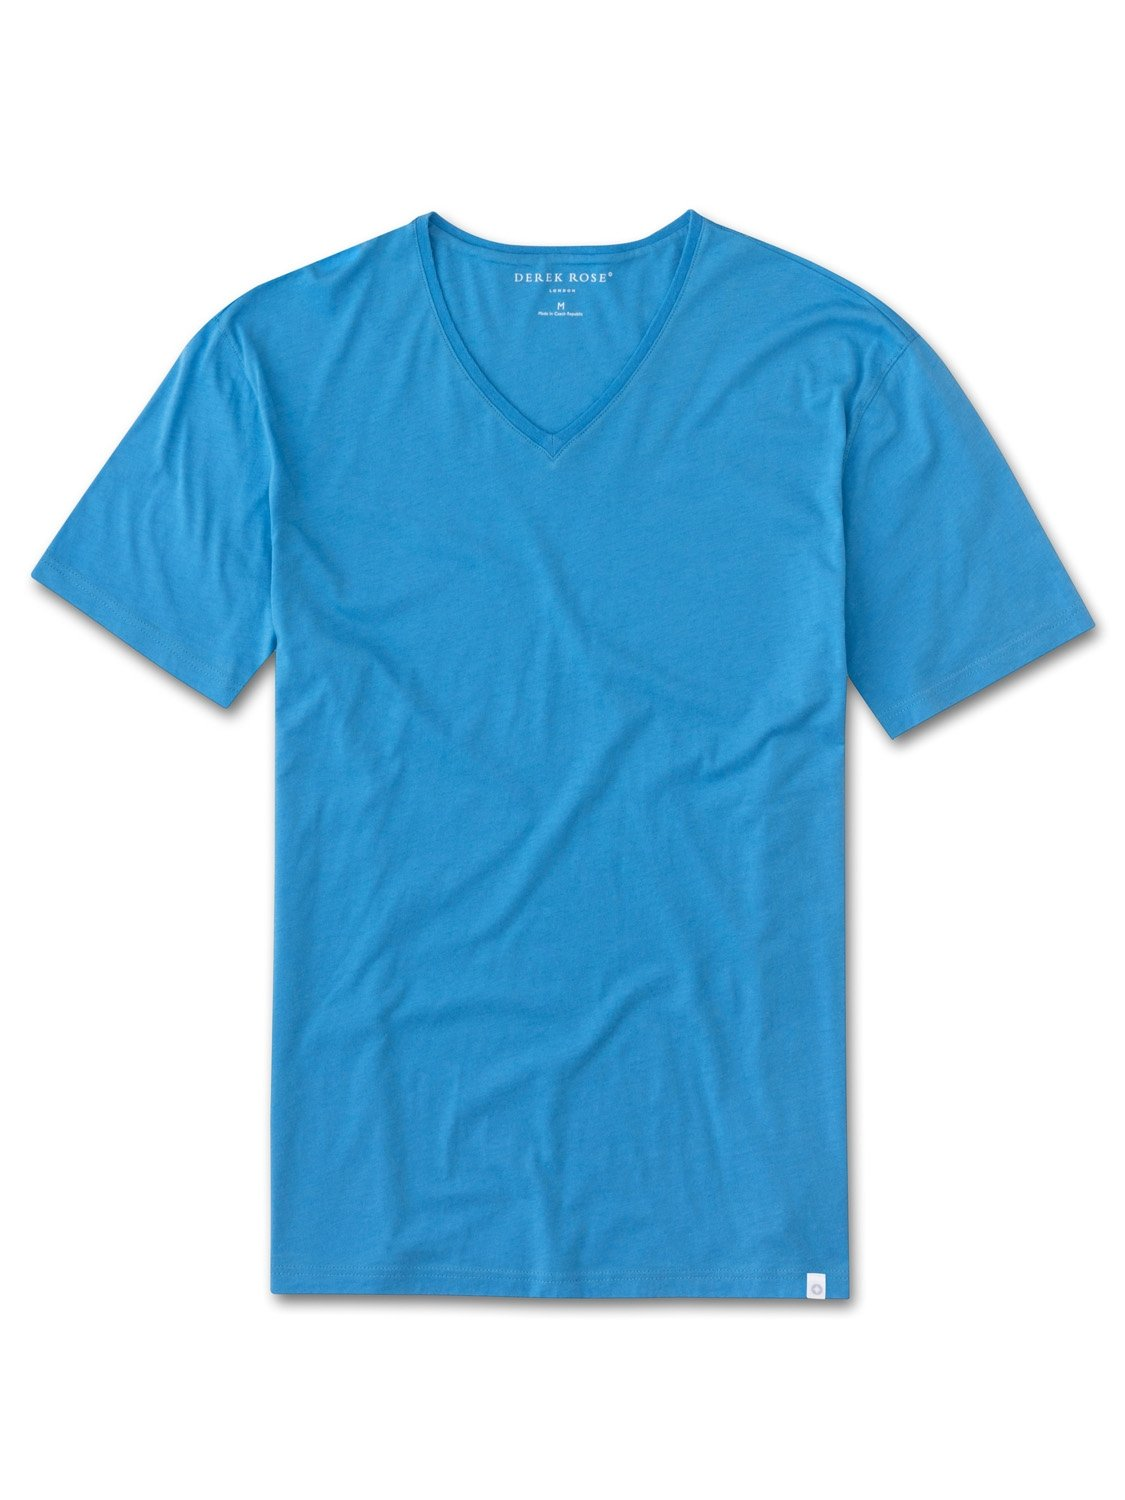 Men's Short Sleeve V-Neck T-Shirt Riley 2 Pima Cotton Blue